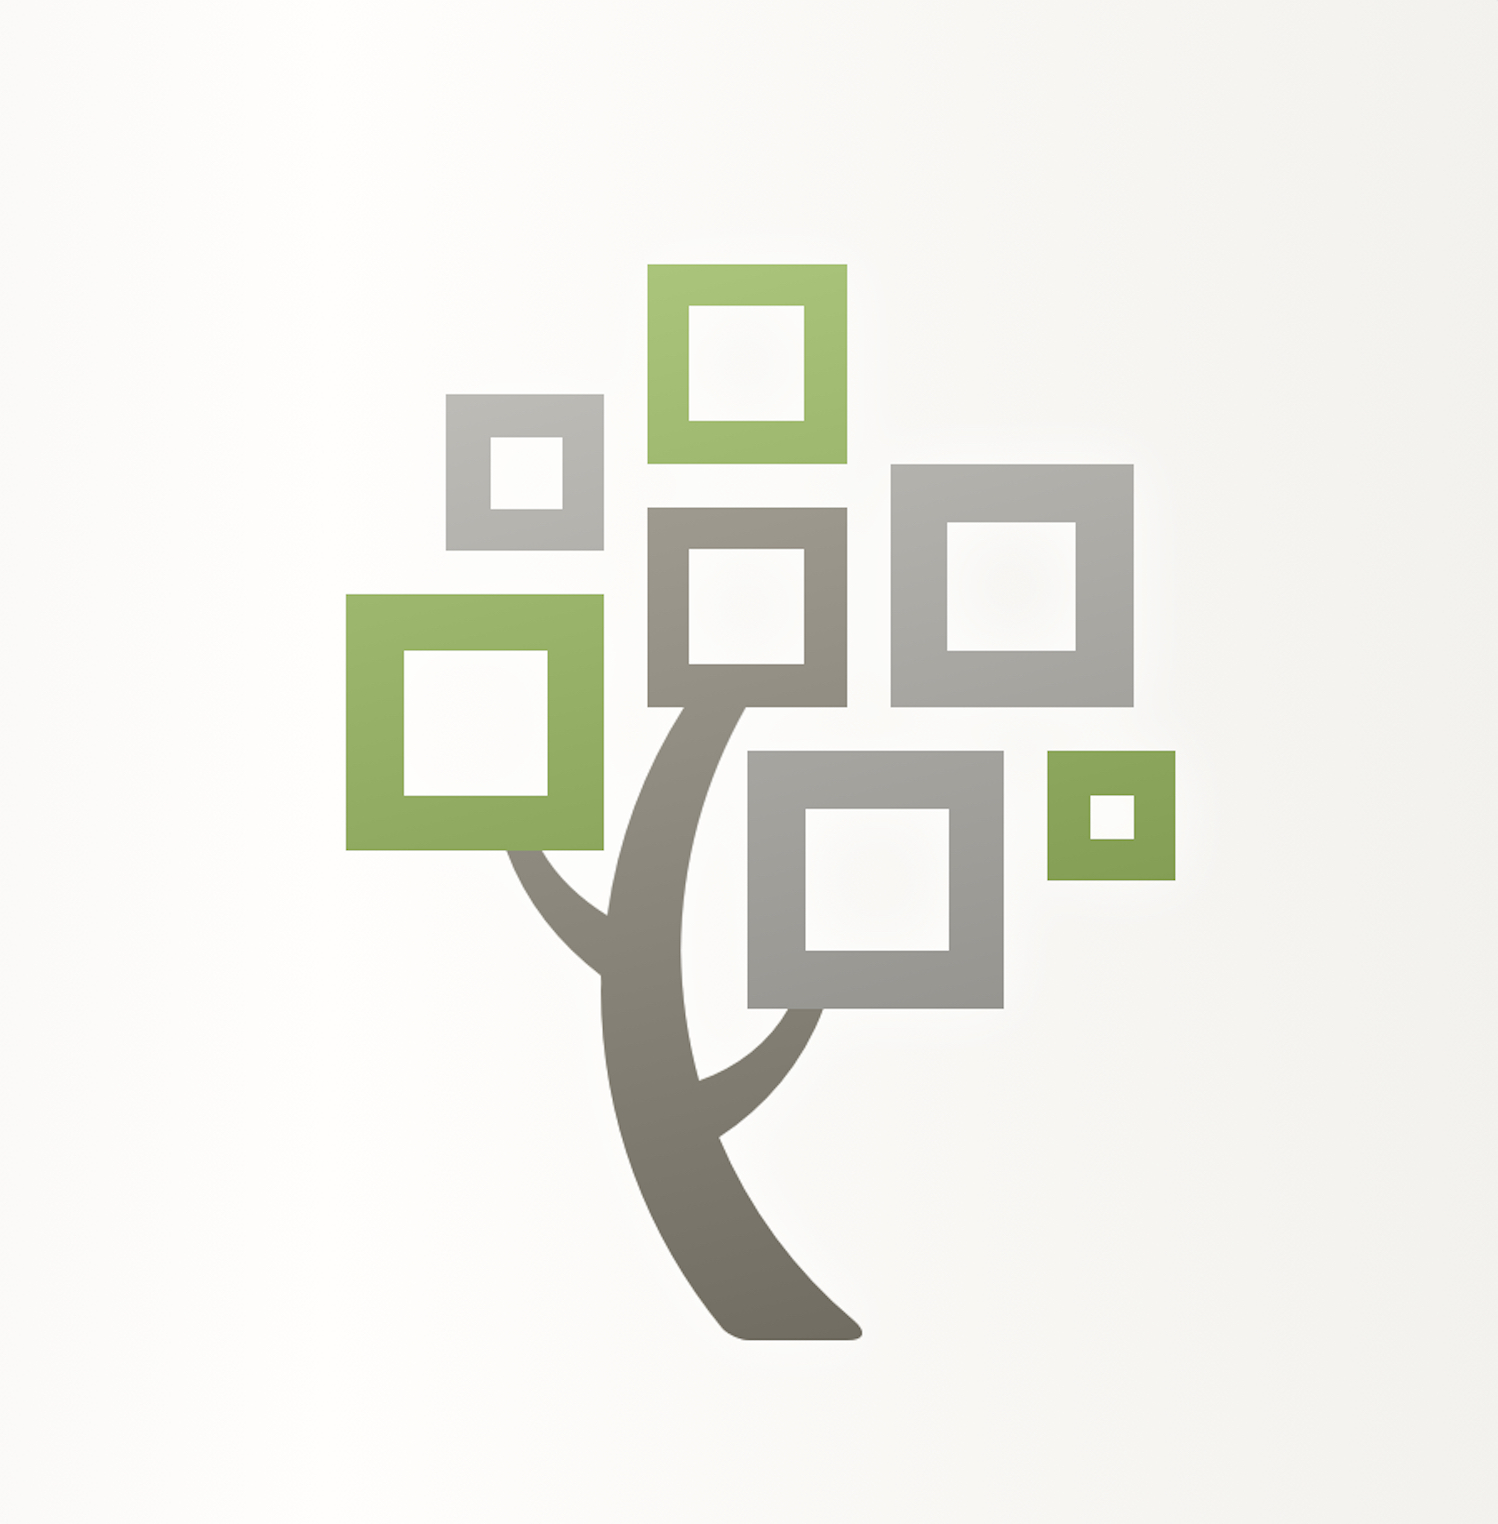 The logo for the FamilySearch Tree mobile app.